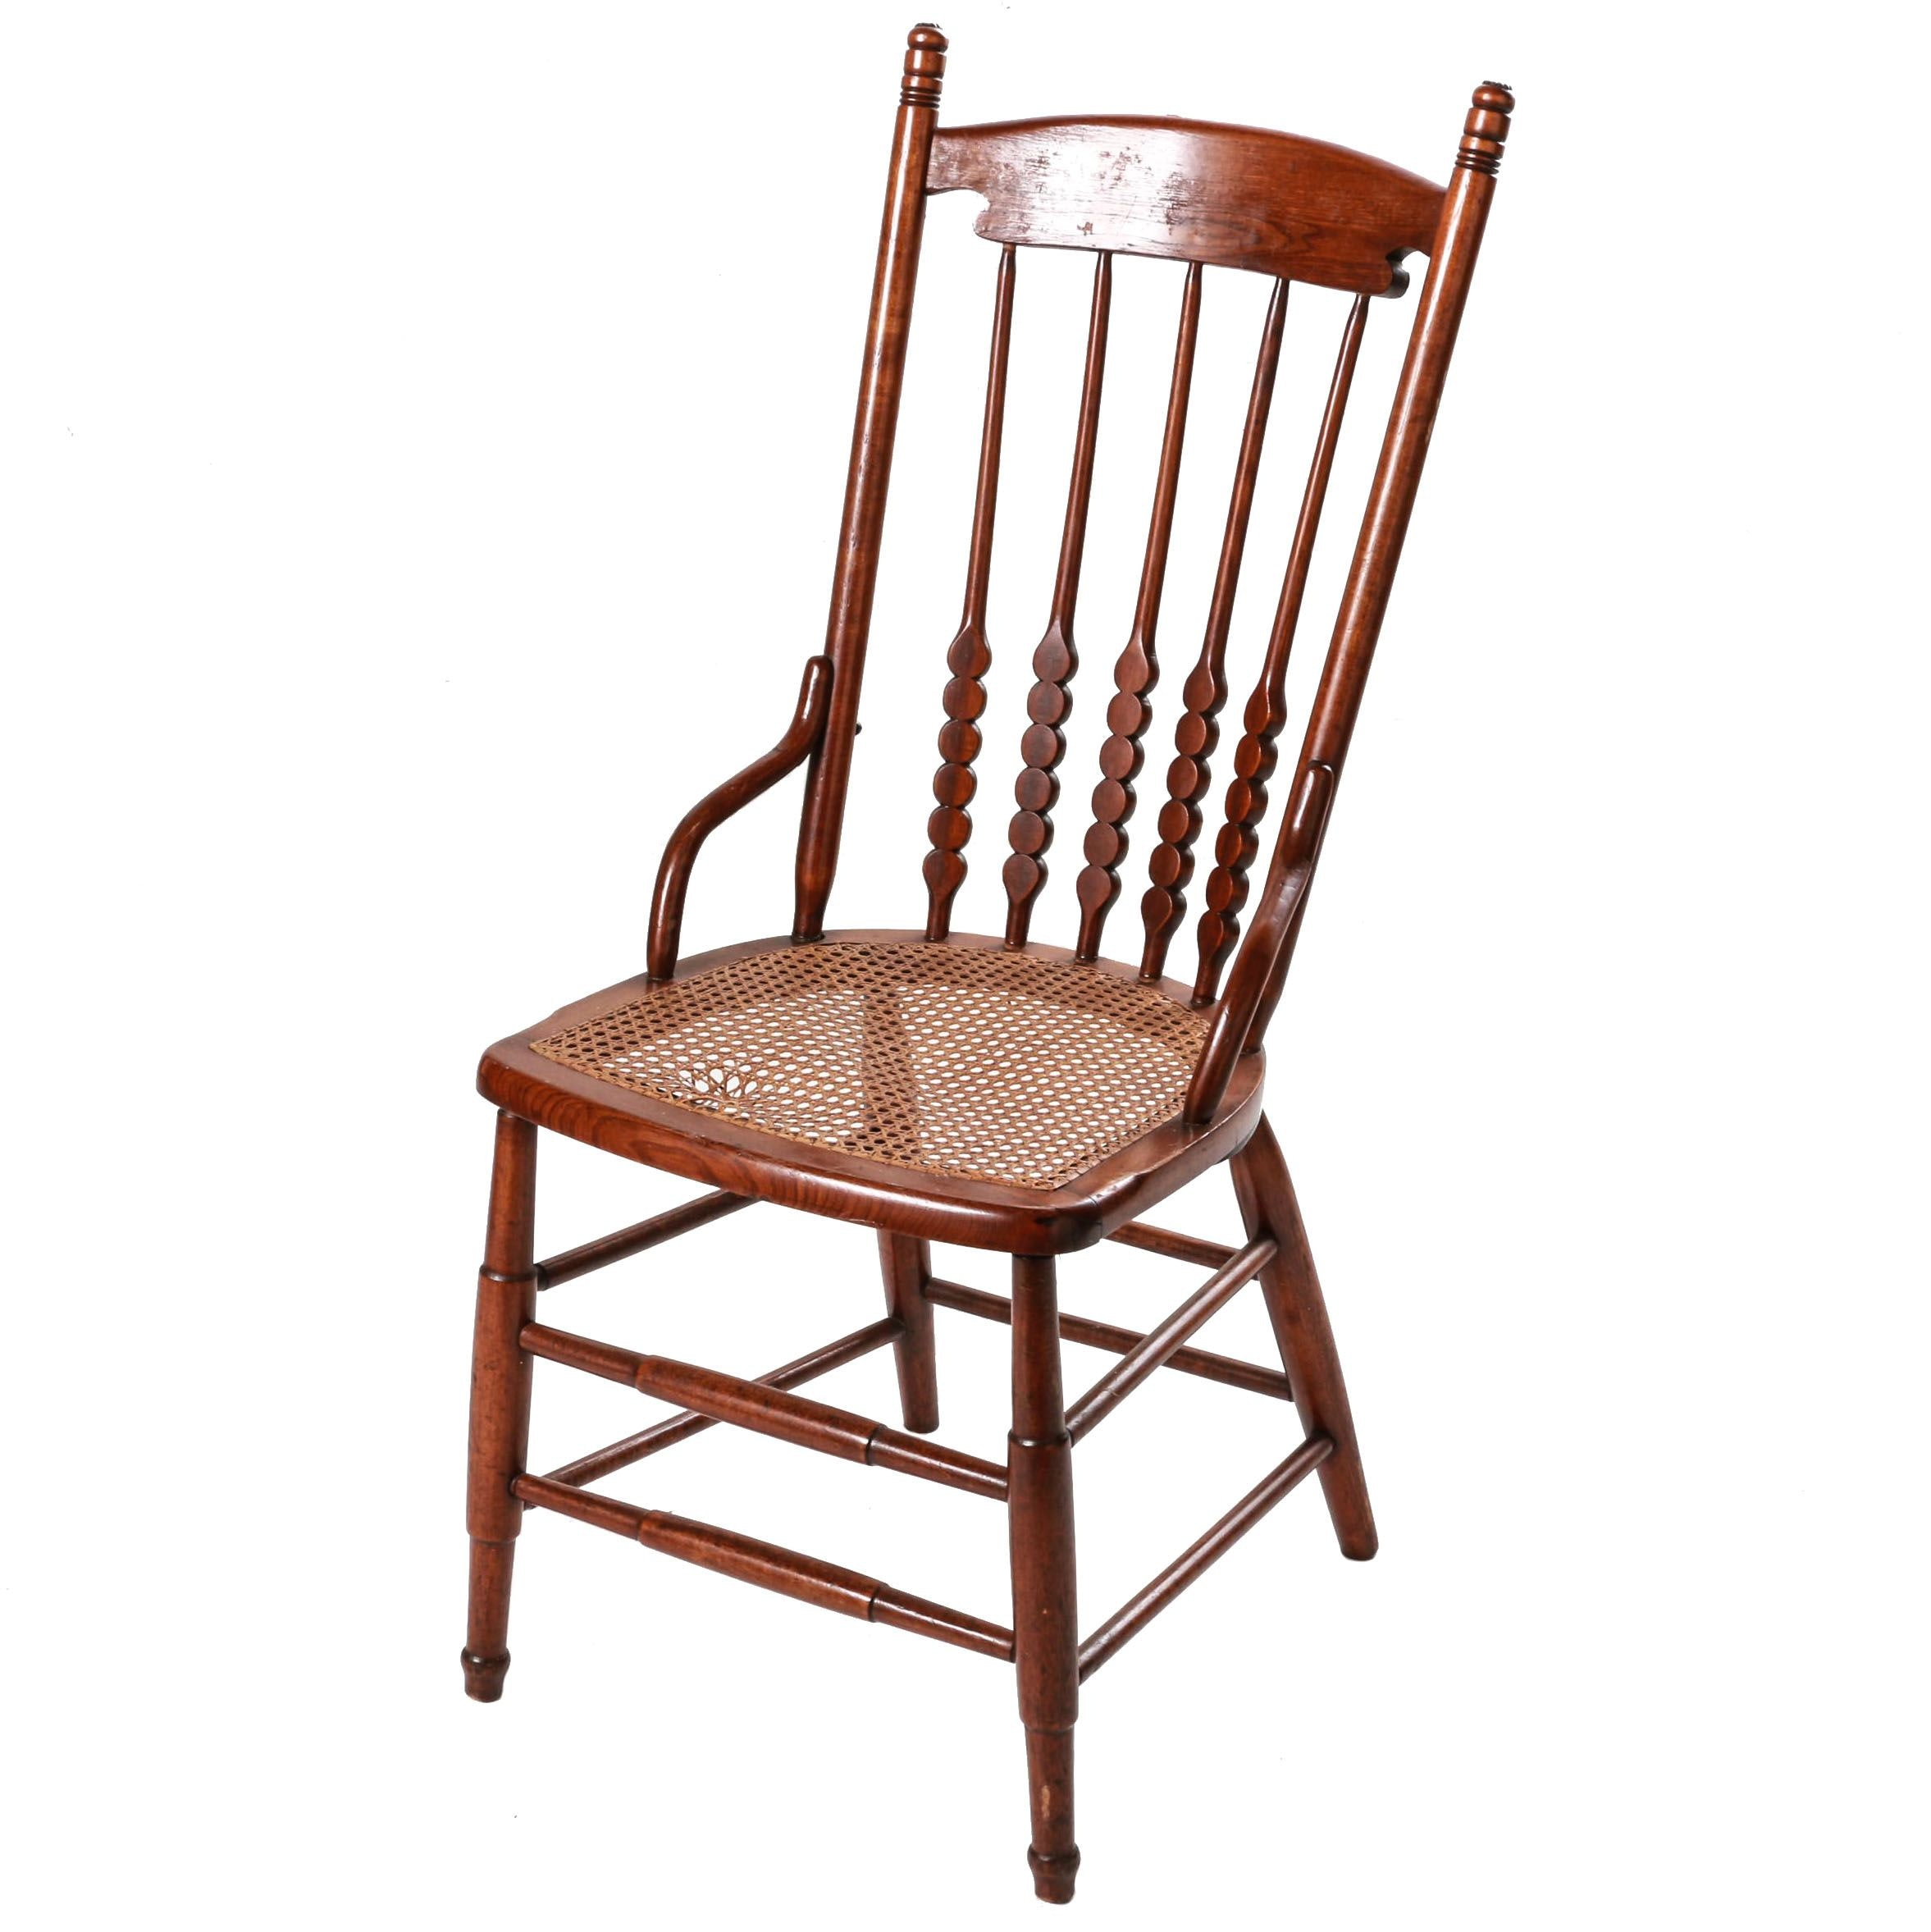 Vintage Spindle Back Chair with Cane Seat